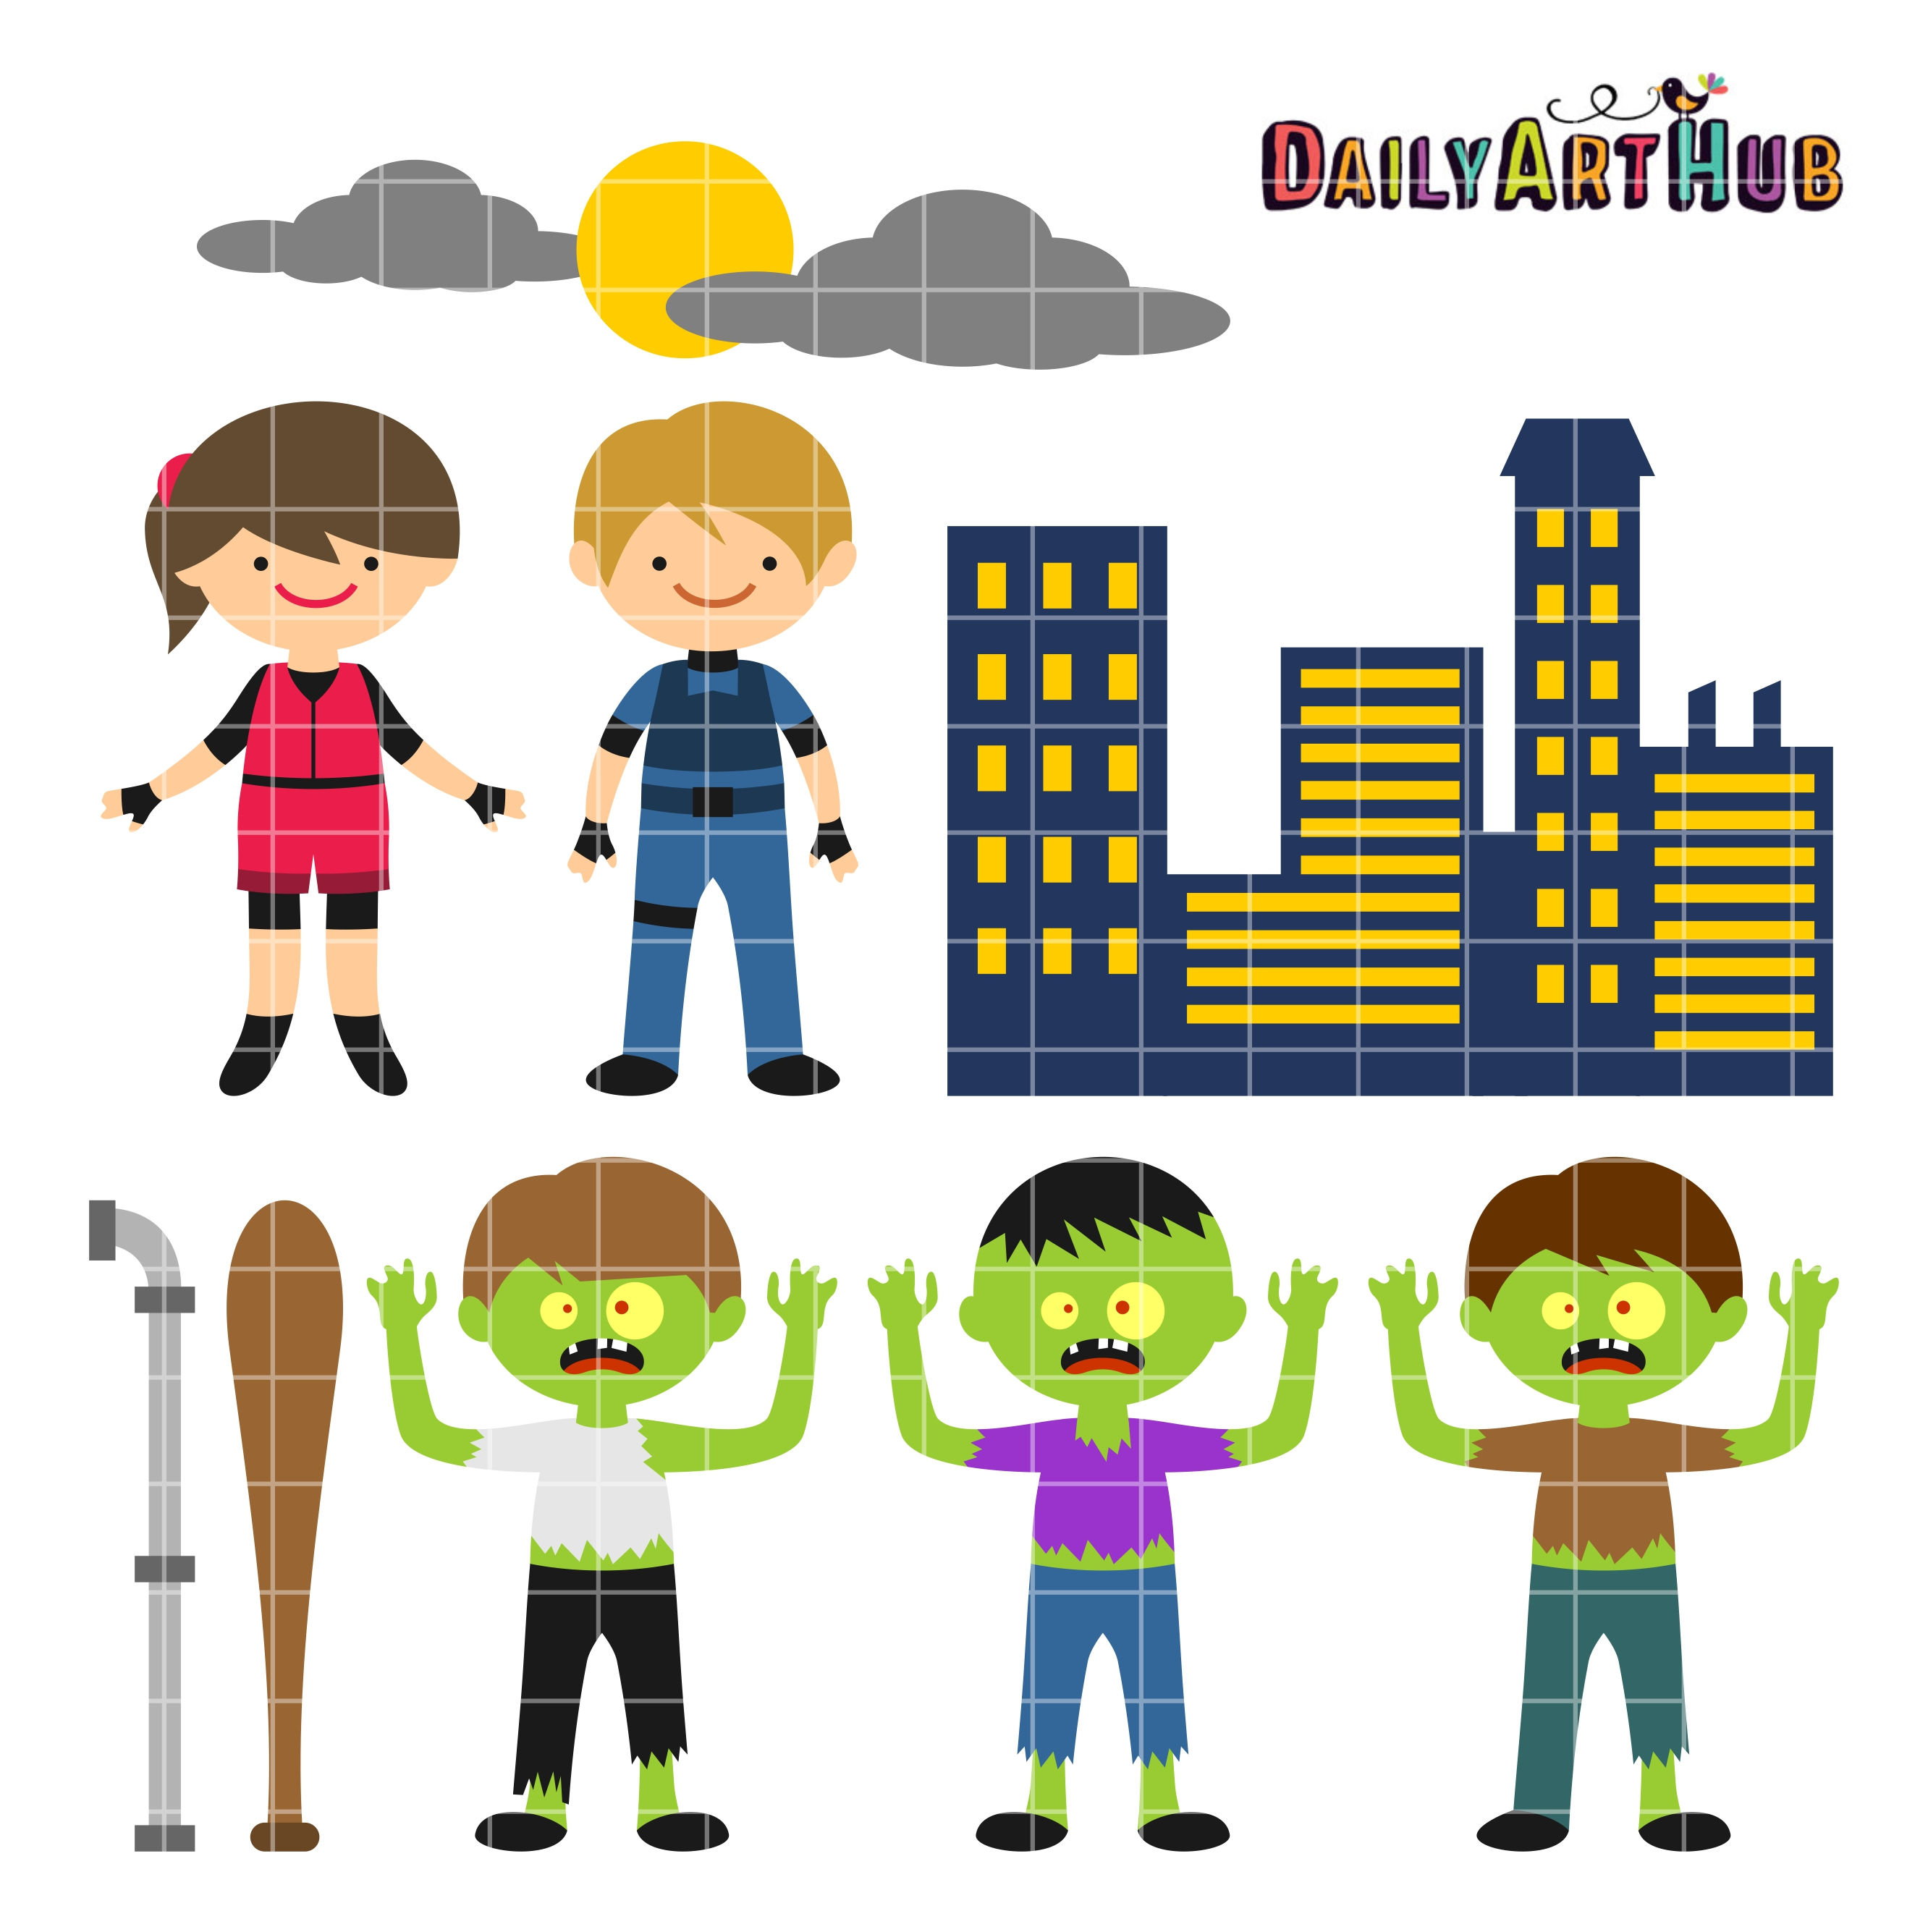 Apocalyptic clipart simple cartoon Edition Cute Daily Cute Art